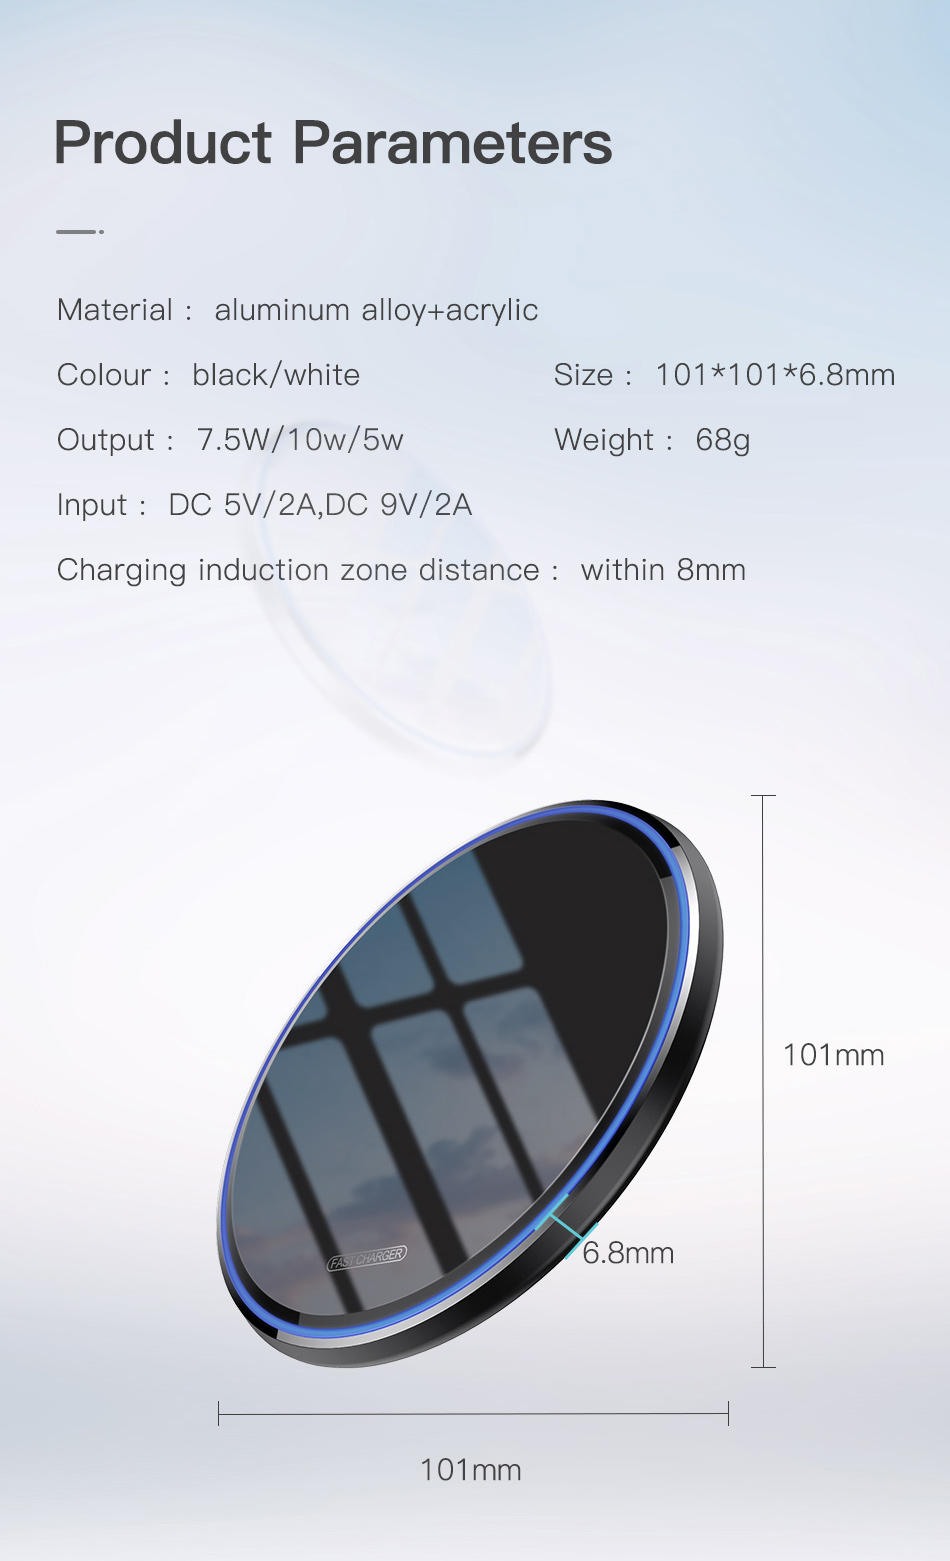 estore kart electronics new arrival mobile accessories Mirror Wireless Charging Pad with product paramaters